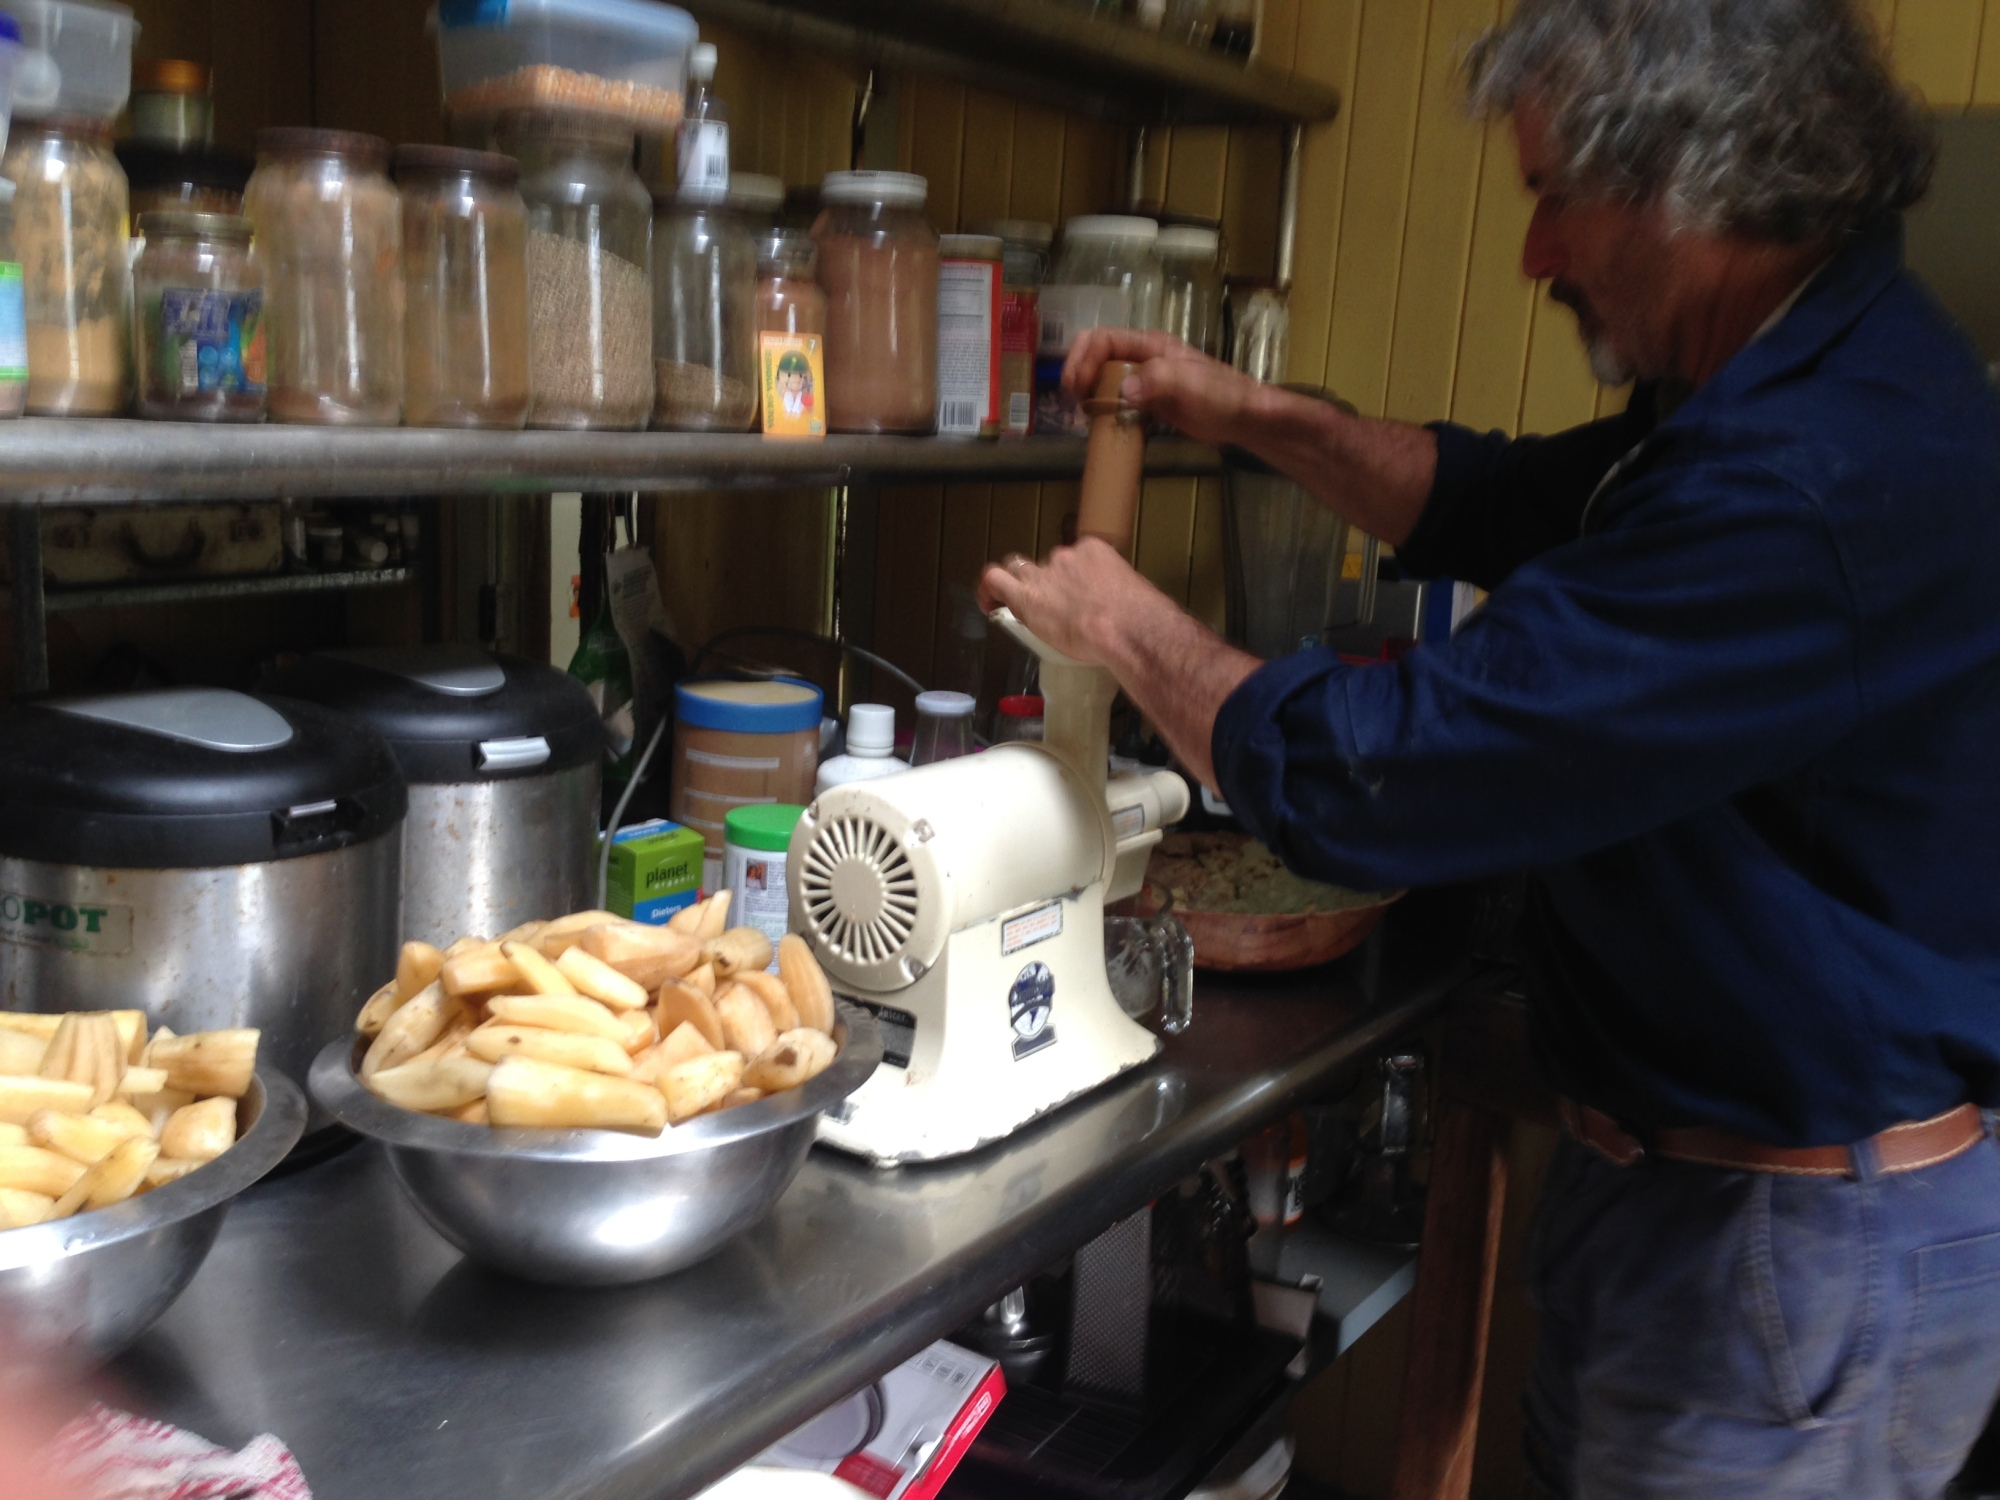 Tom Kendall juicing Yacon to make Yacon syrup for food and health, permaculture and pdc courses